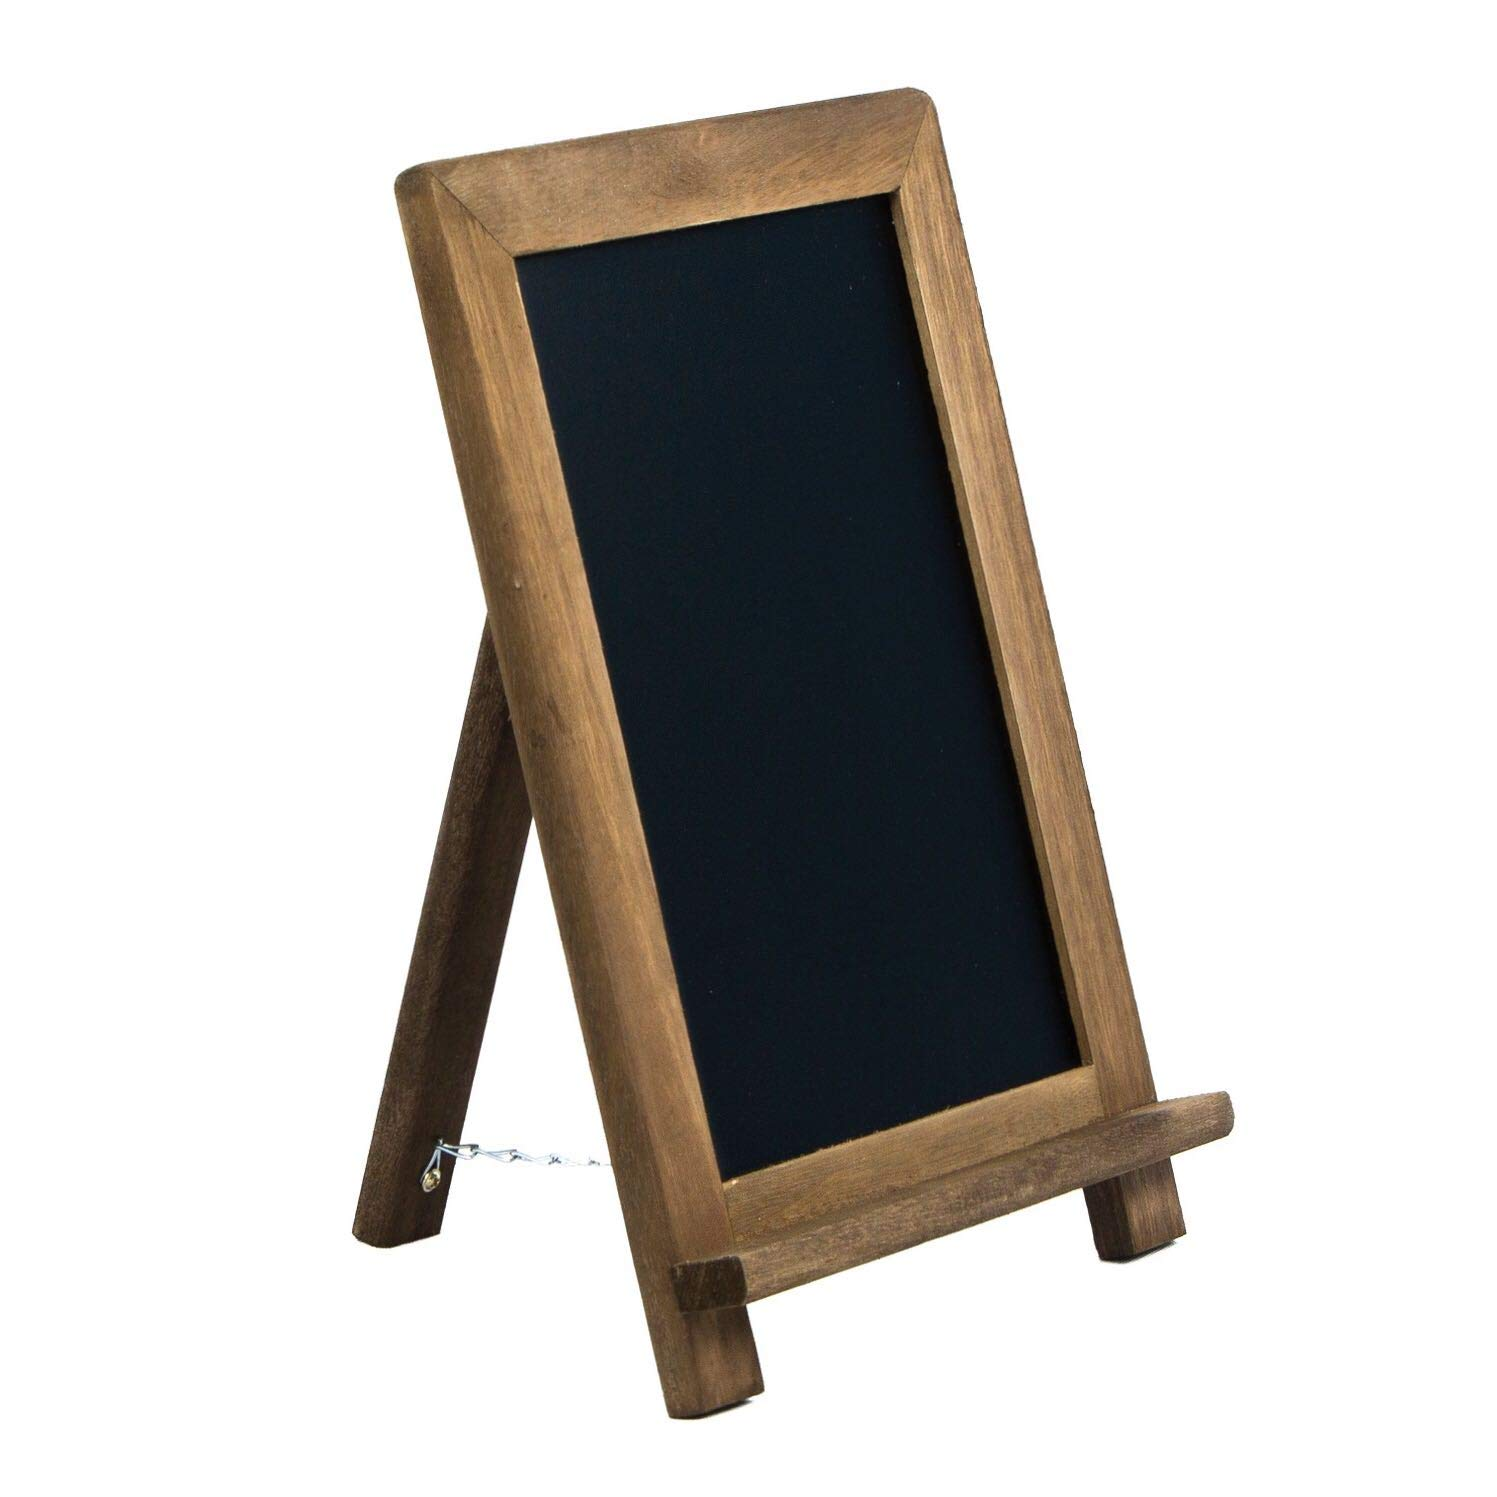 Easel style chalkboard for tabletop.